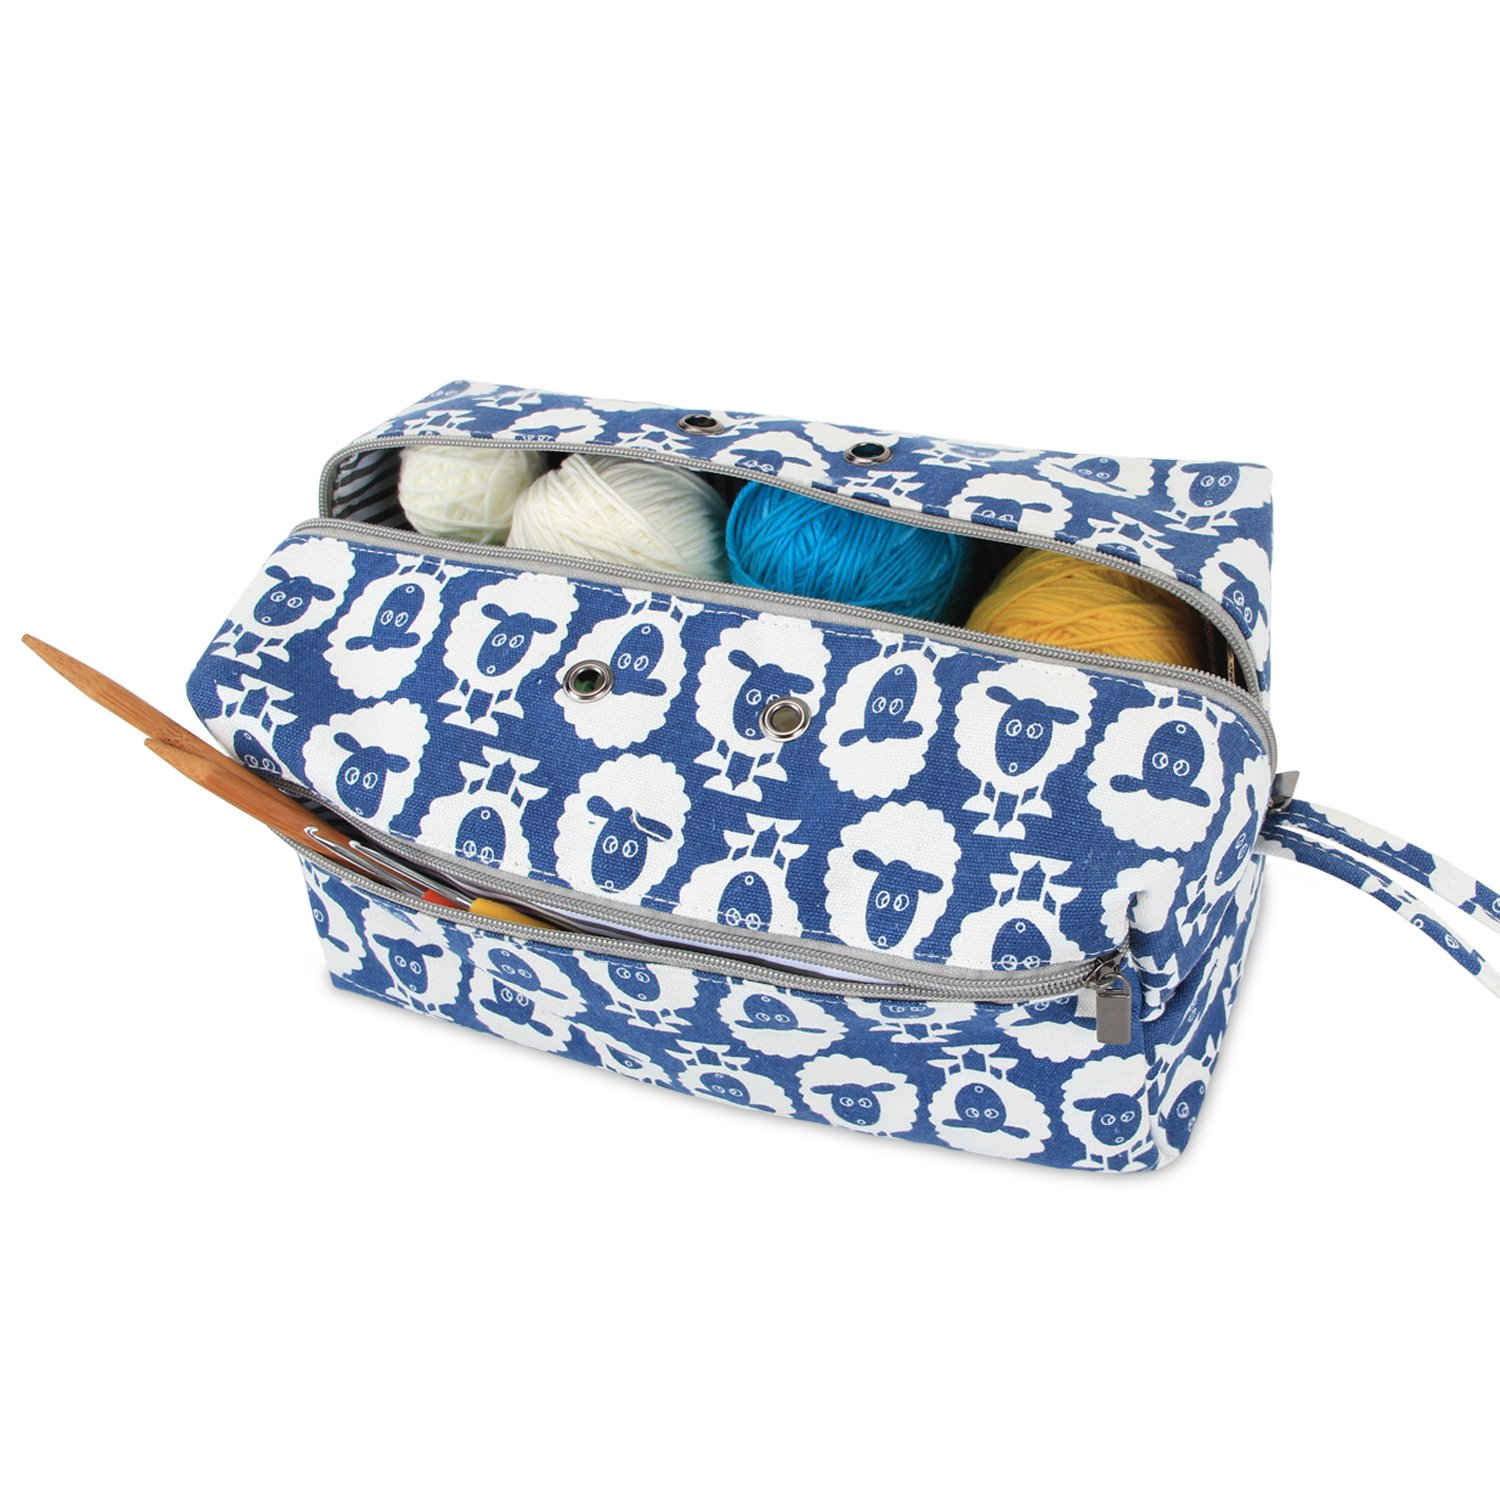 Luxja Yarn Storage Bag, Carrying Knitting Bag for Yarn Skeins, Crochet Hooks, Knitting Needles (up to 10 Inches) and Other Small Accessories (Large, Sheep)